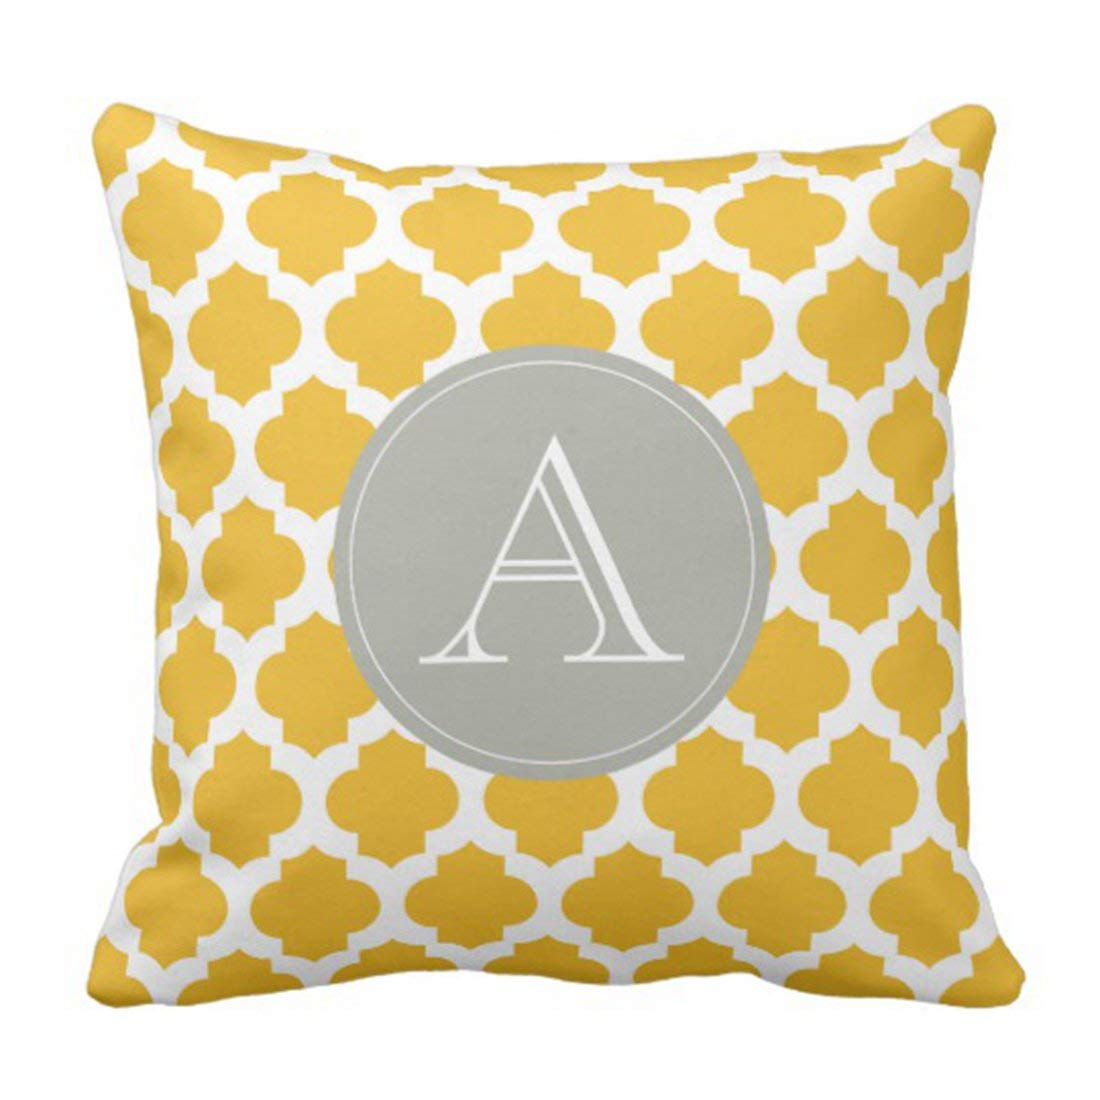 WOPOP Yellow Grey Mustard White Moroccan Pattern Gray Personalize Pillowcase Cushion Cover 16x16 inches